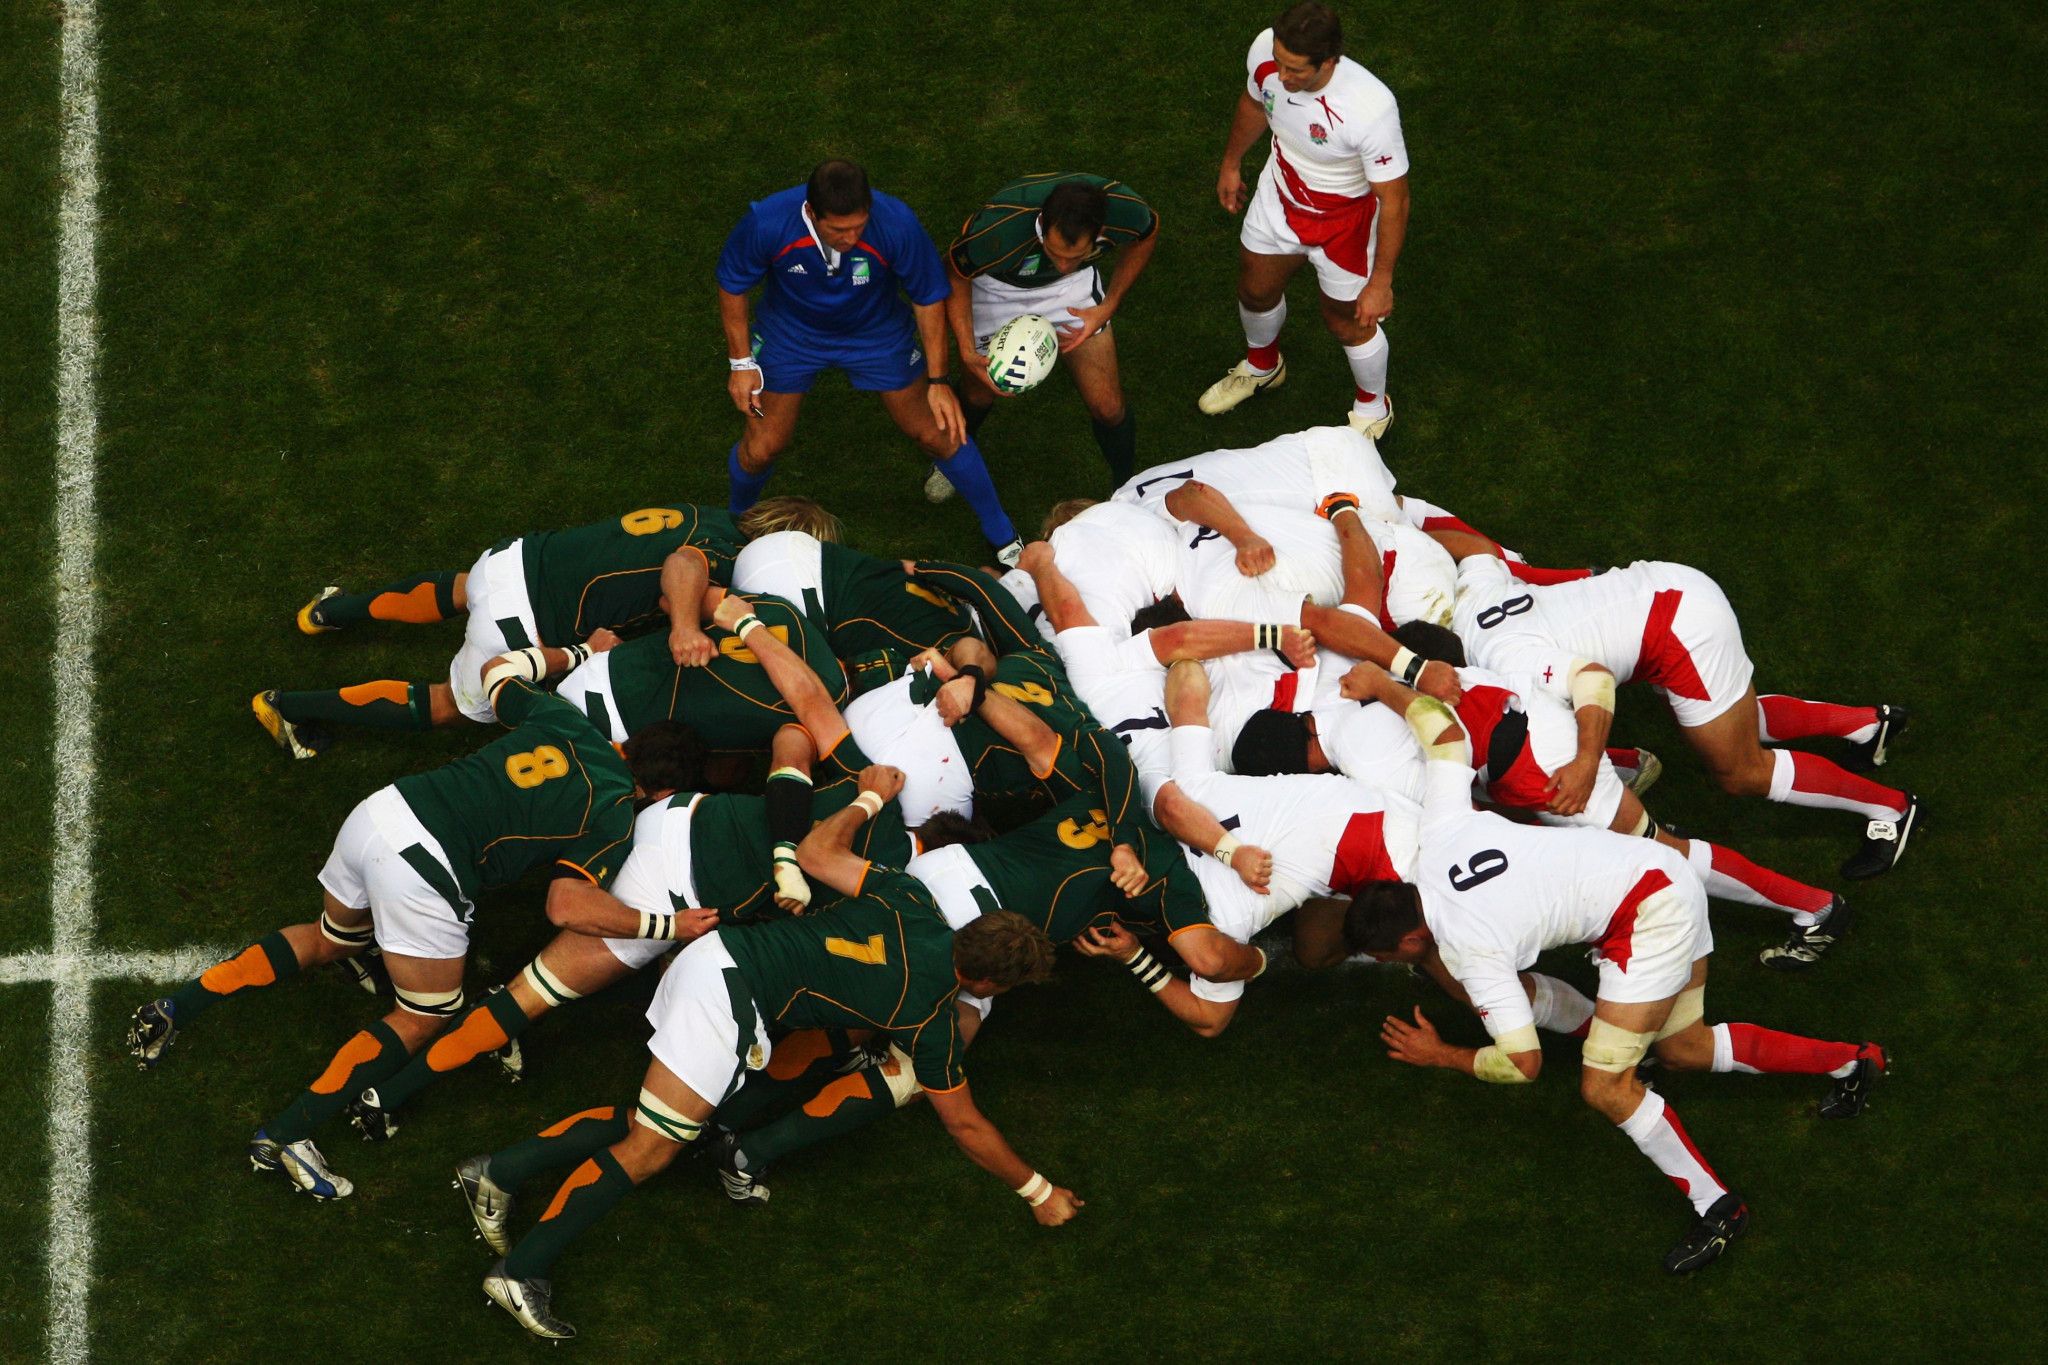 South Africa were victorious when France last hosted the World Cup in 2007 - just as the Springboks were in Japan last year ©Getty Images